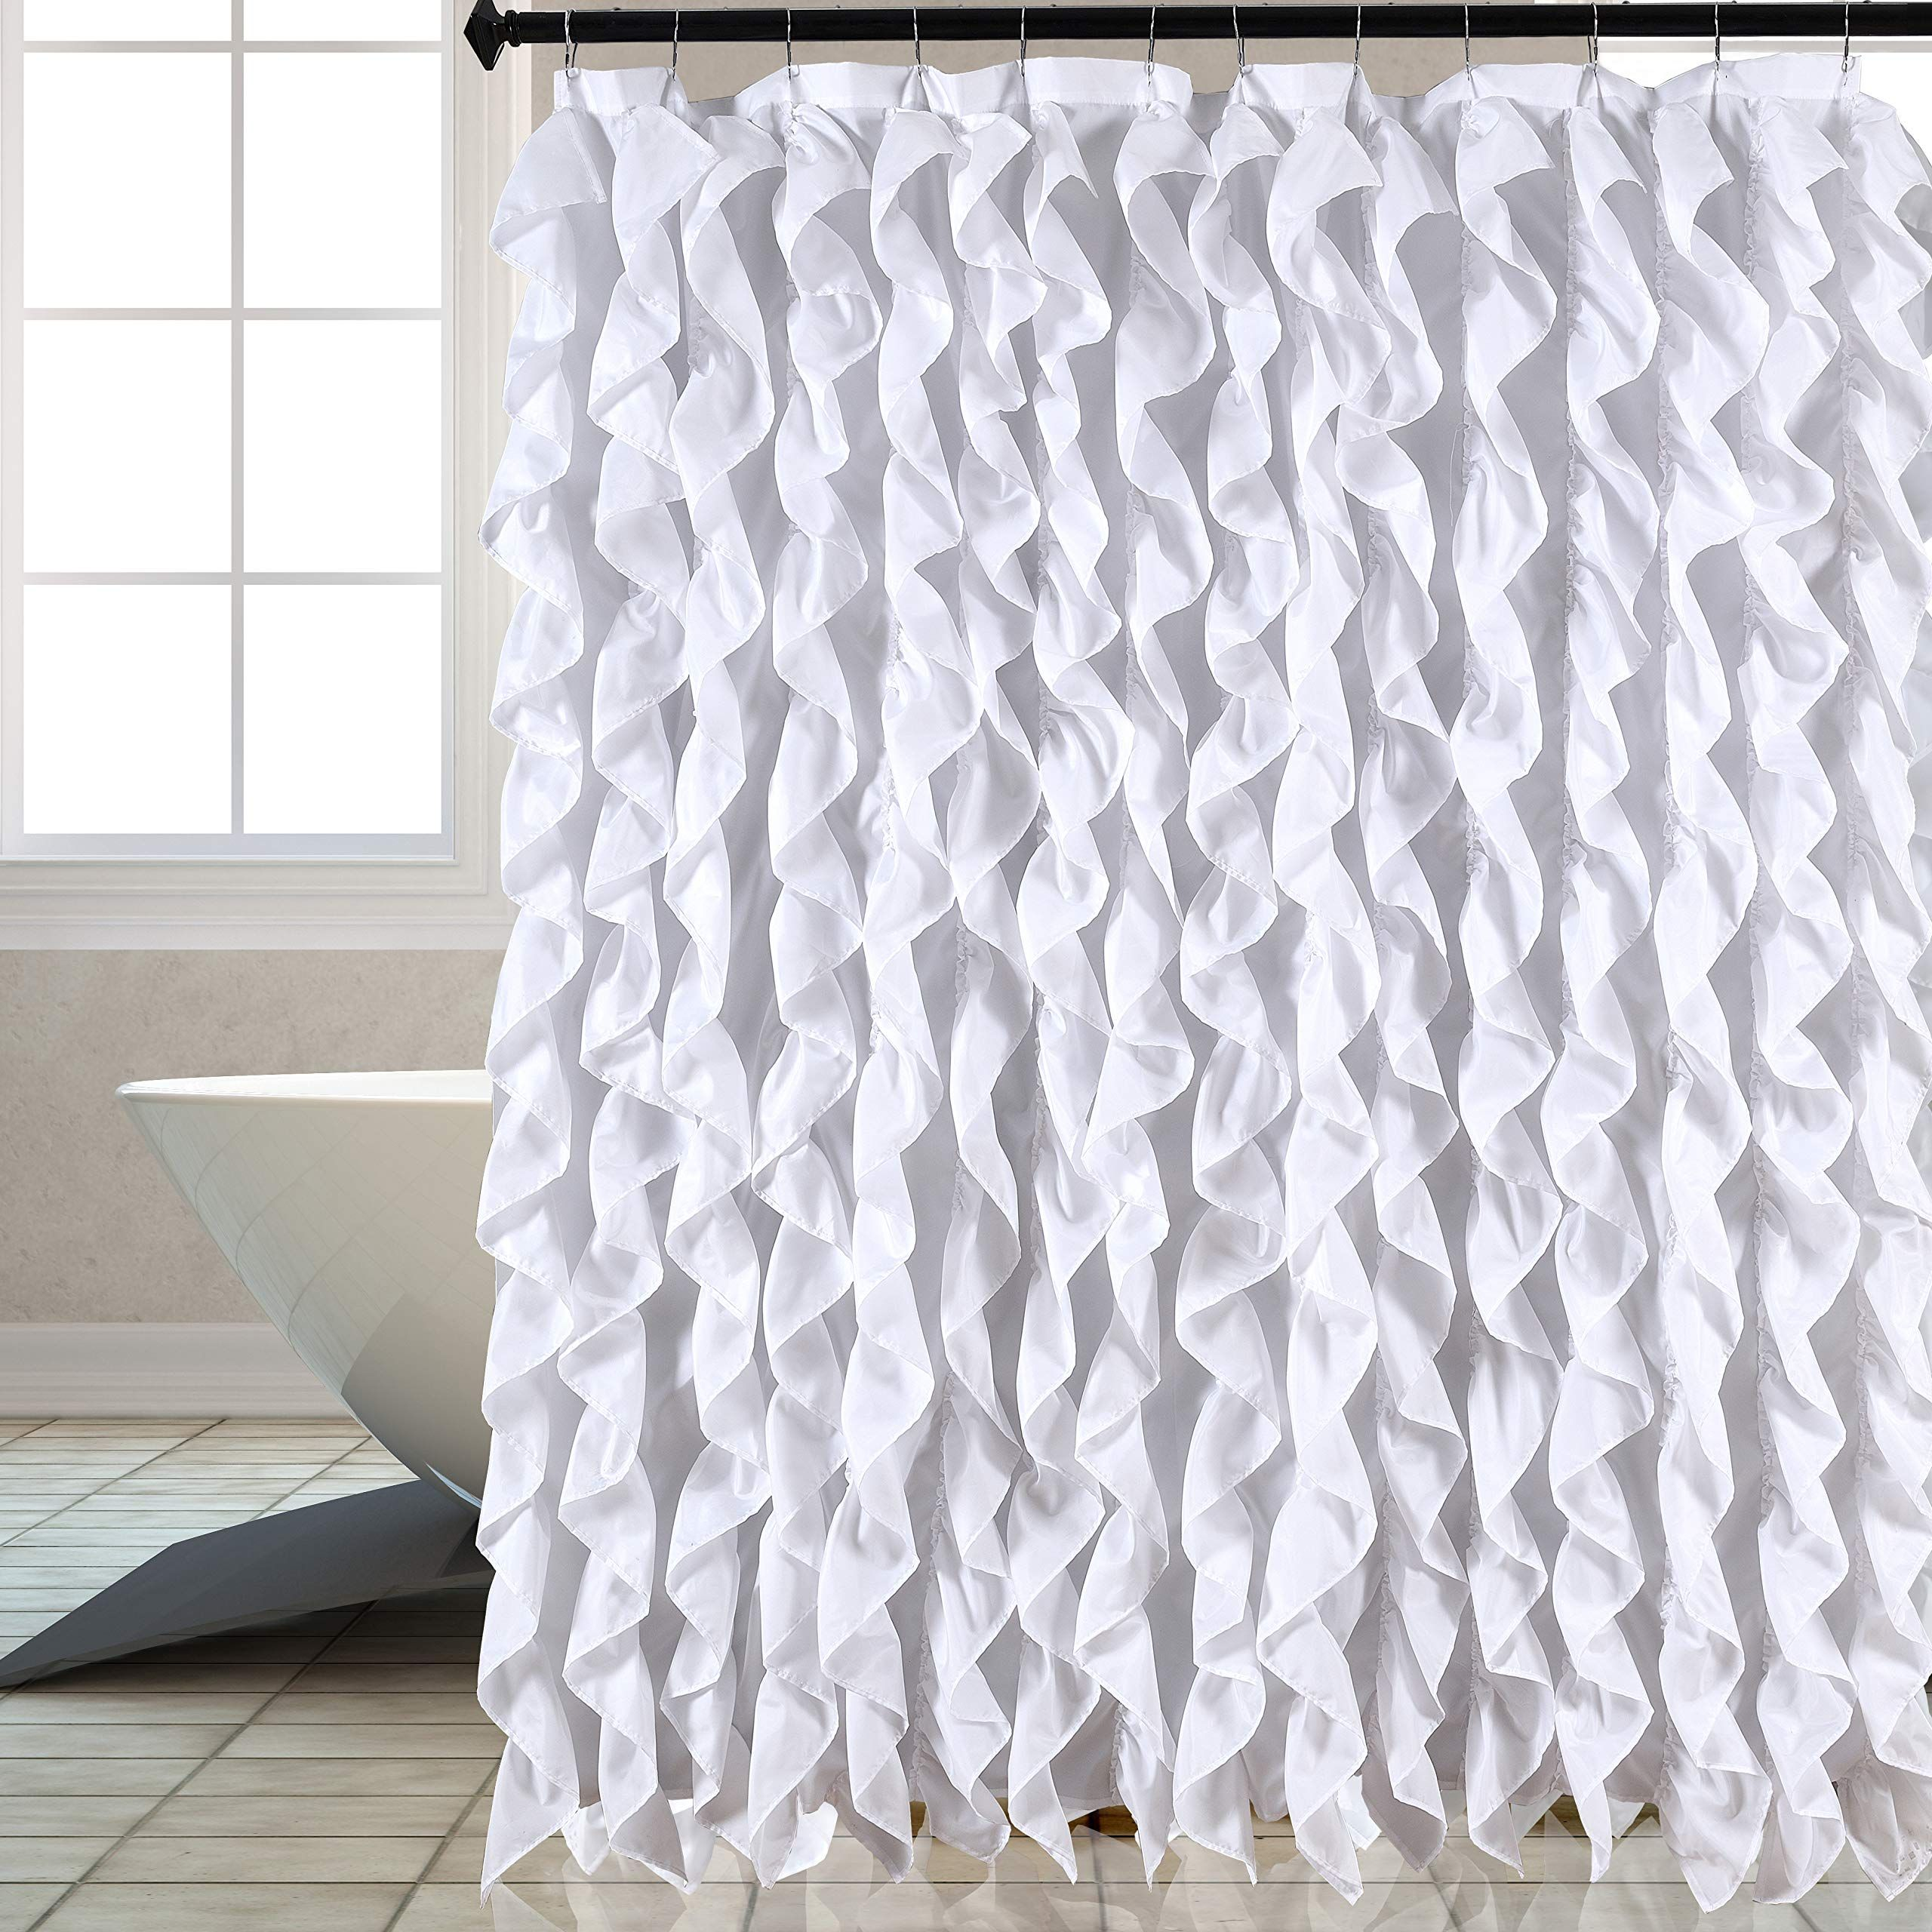 Waterfall Shabby Chic Ruffled Fabric Shower Curtain White Click Image To Revi White Ruffle Shower Curtain Ruffle Shower Curtains Shabby Chic Shower Curtain